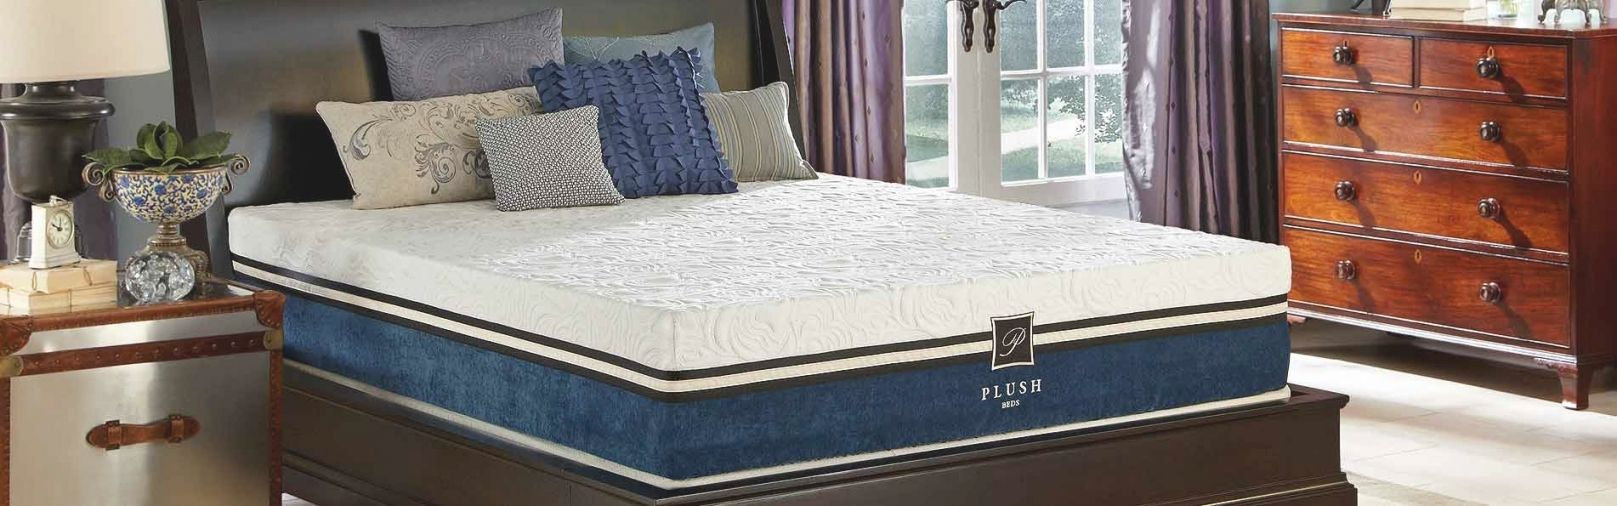 Plushbeds, an American company that specializes in an outstanding line of pure latex mattresses, used to be Marc's arch rival in the bedding business. Now, he refers customers to them and stands behind their stellar product line.  Check them out.